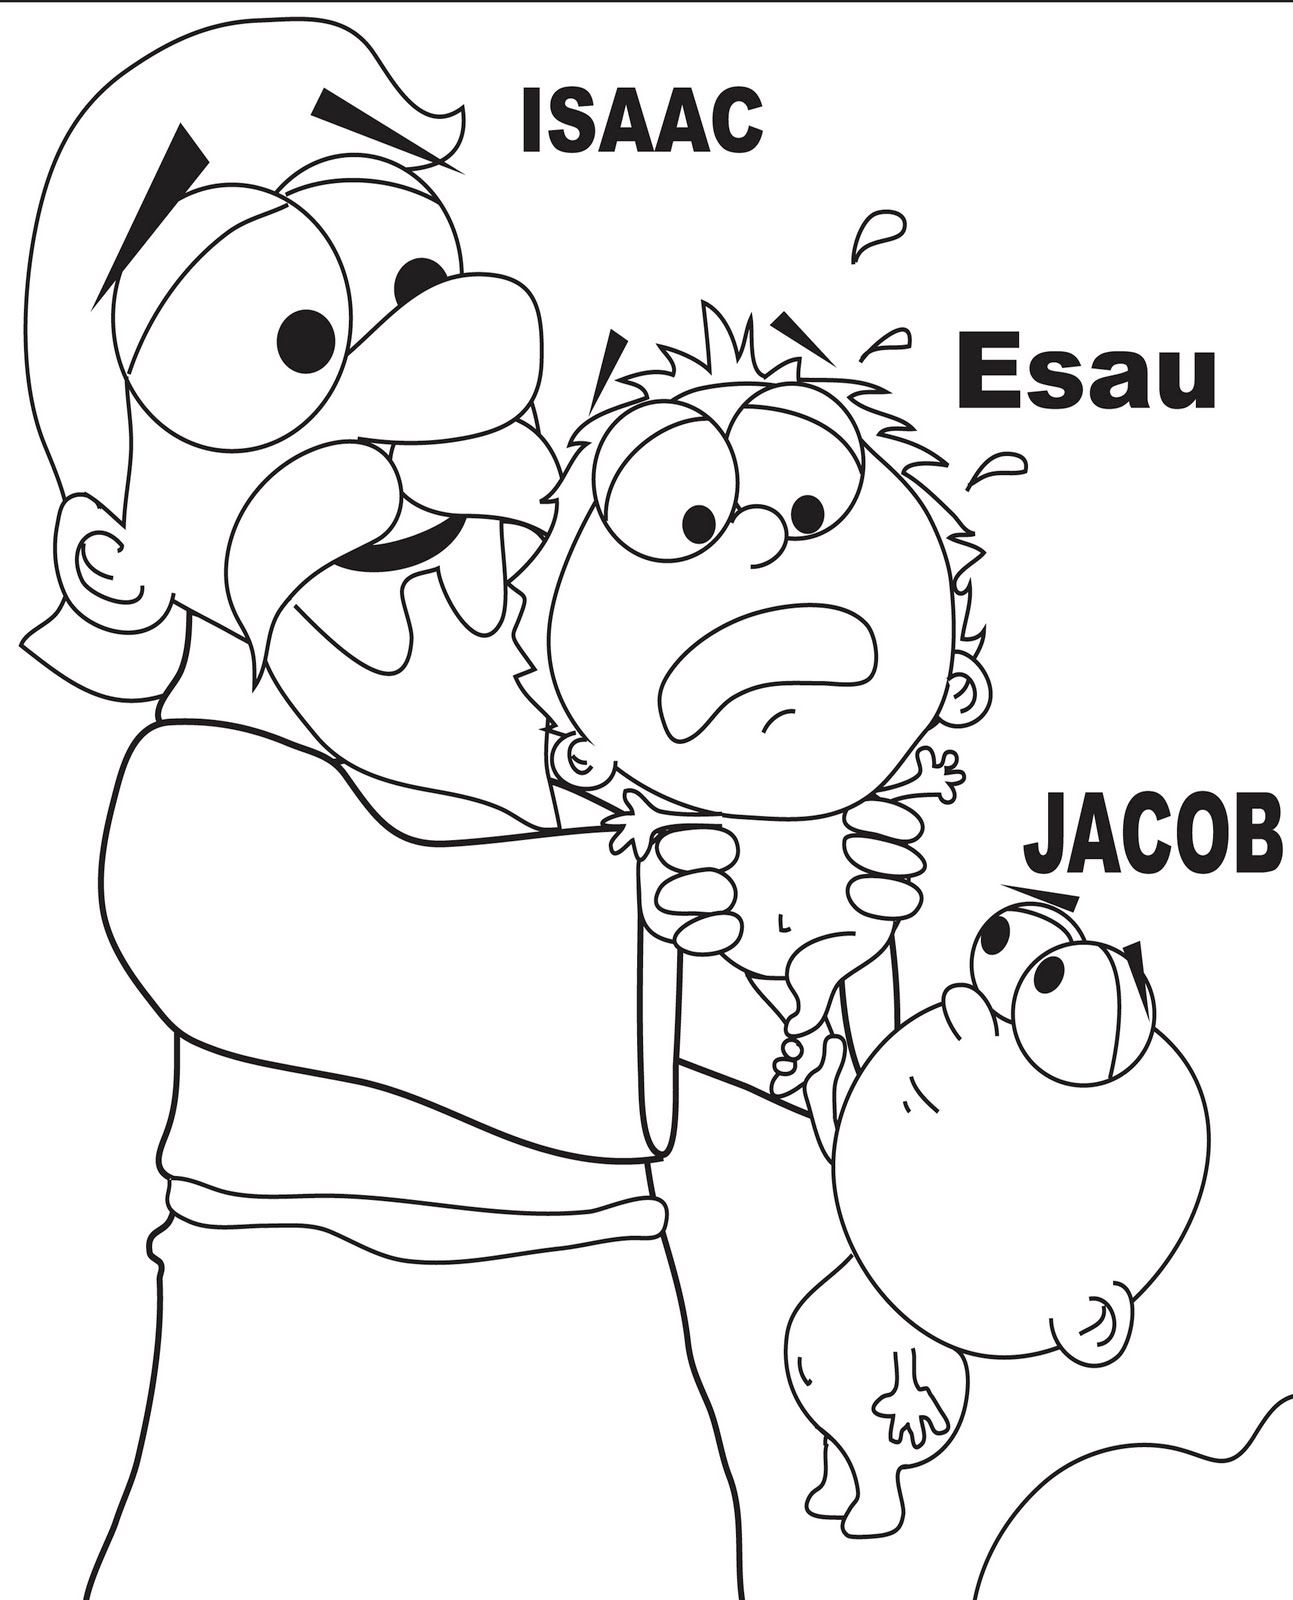 Jacob and Esau coloring page | Home Bible Lessons | Pinterest ...